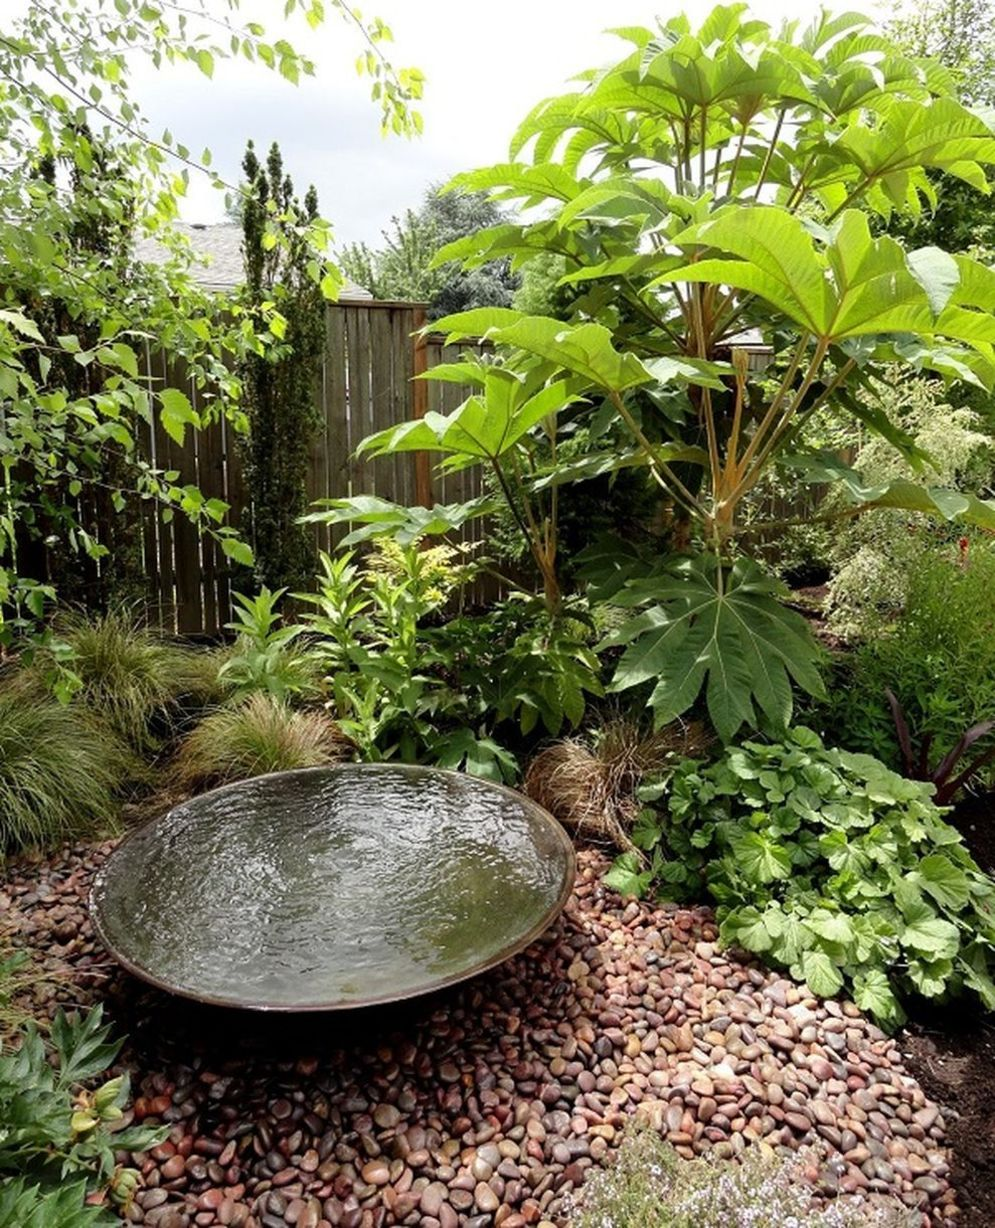 Beautiful Zen garden style with peaceful arrangements creating peaceful and harmonies display that will calm our mind Image 18